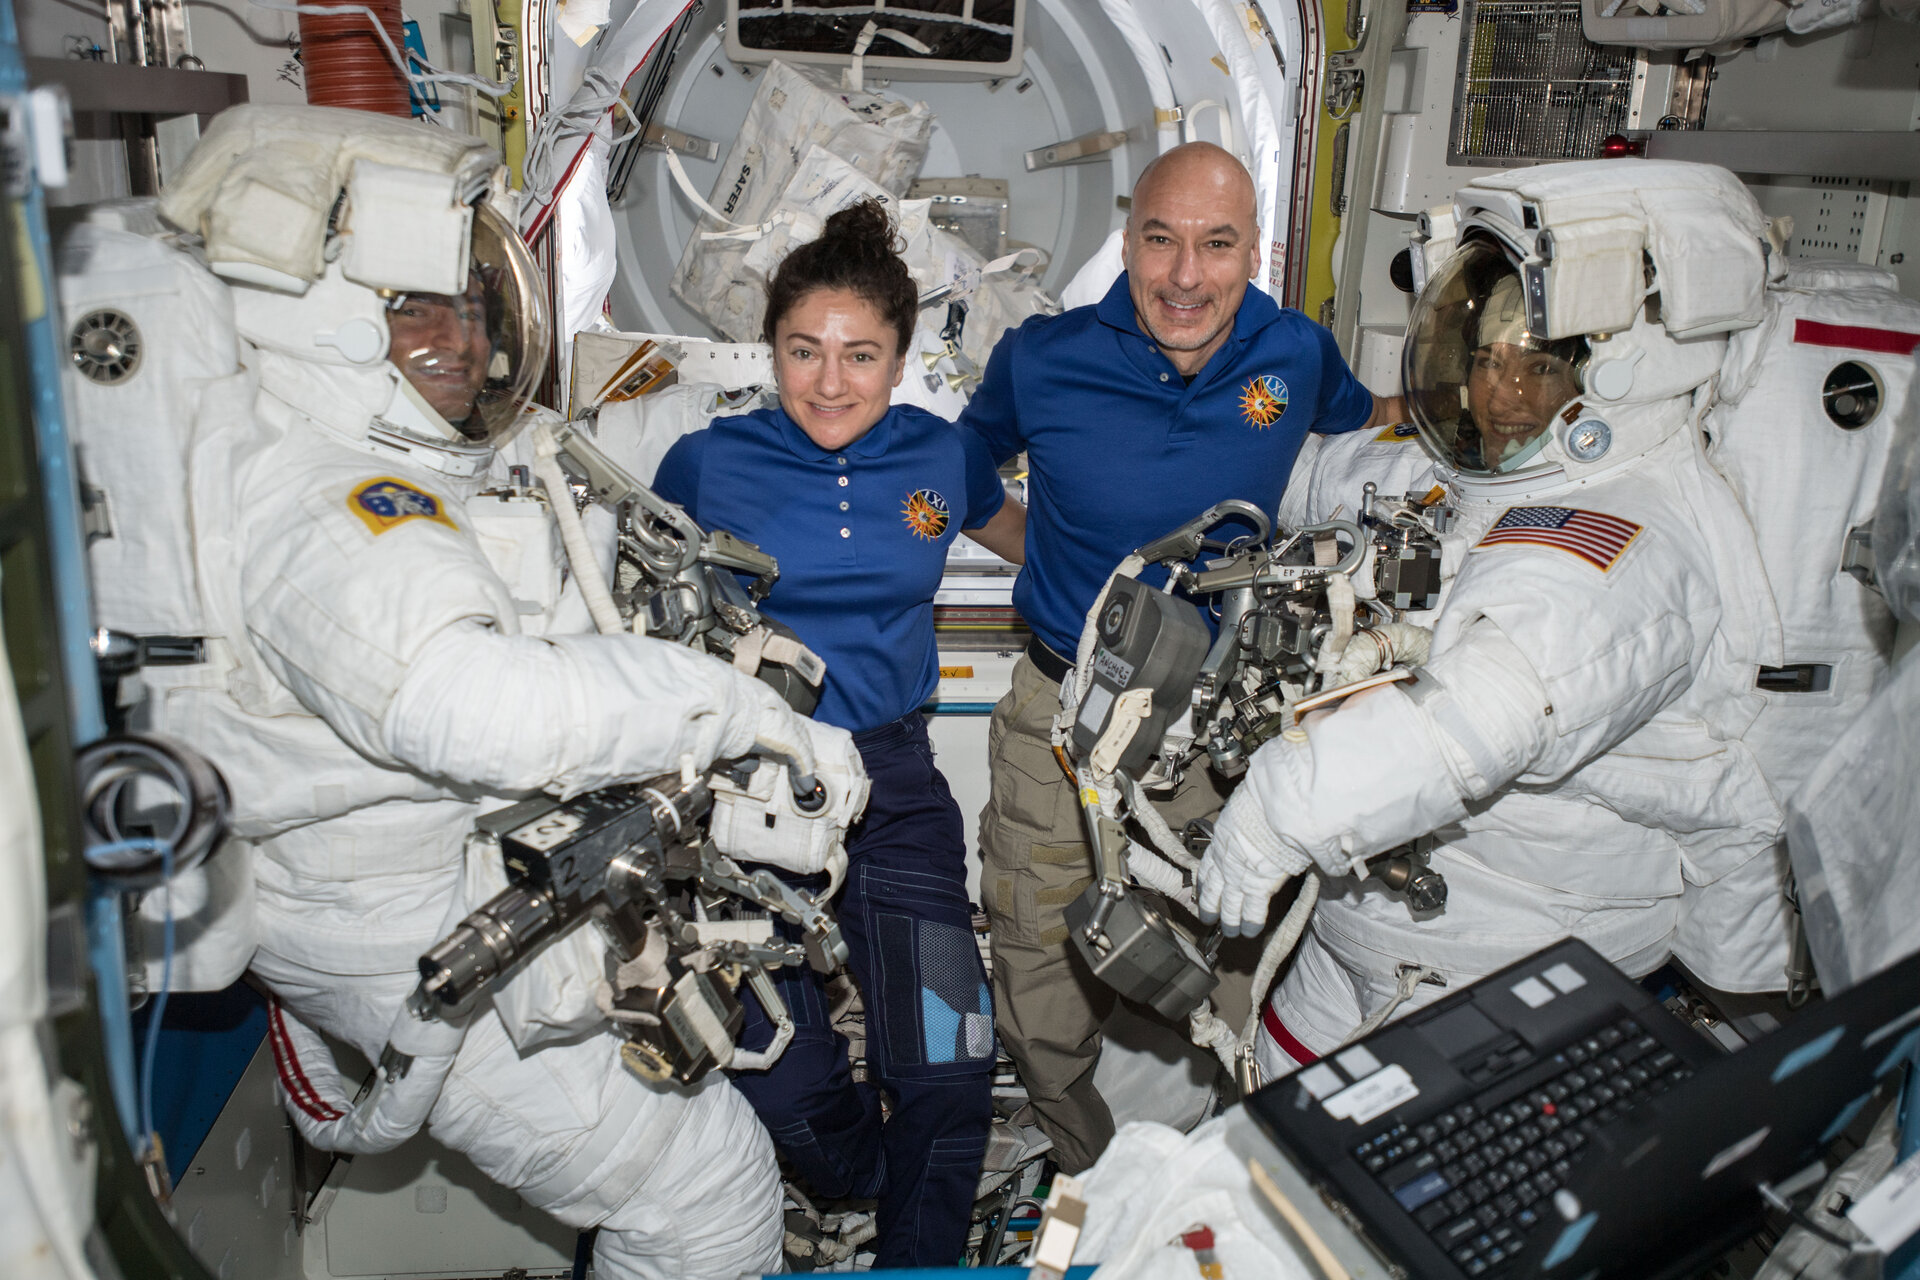 ESA astronaut Luca Parmitano assists spacewalkers in the Quest airlock